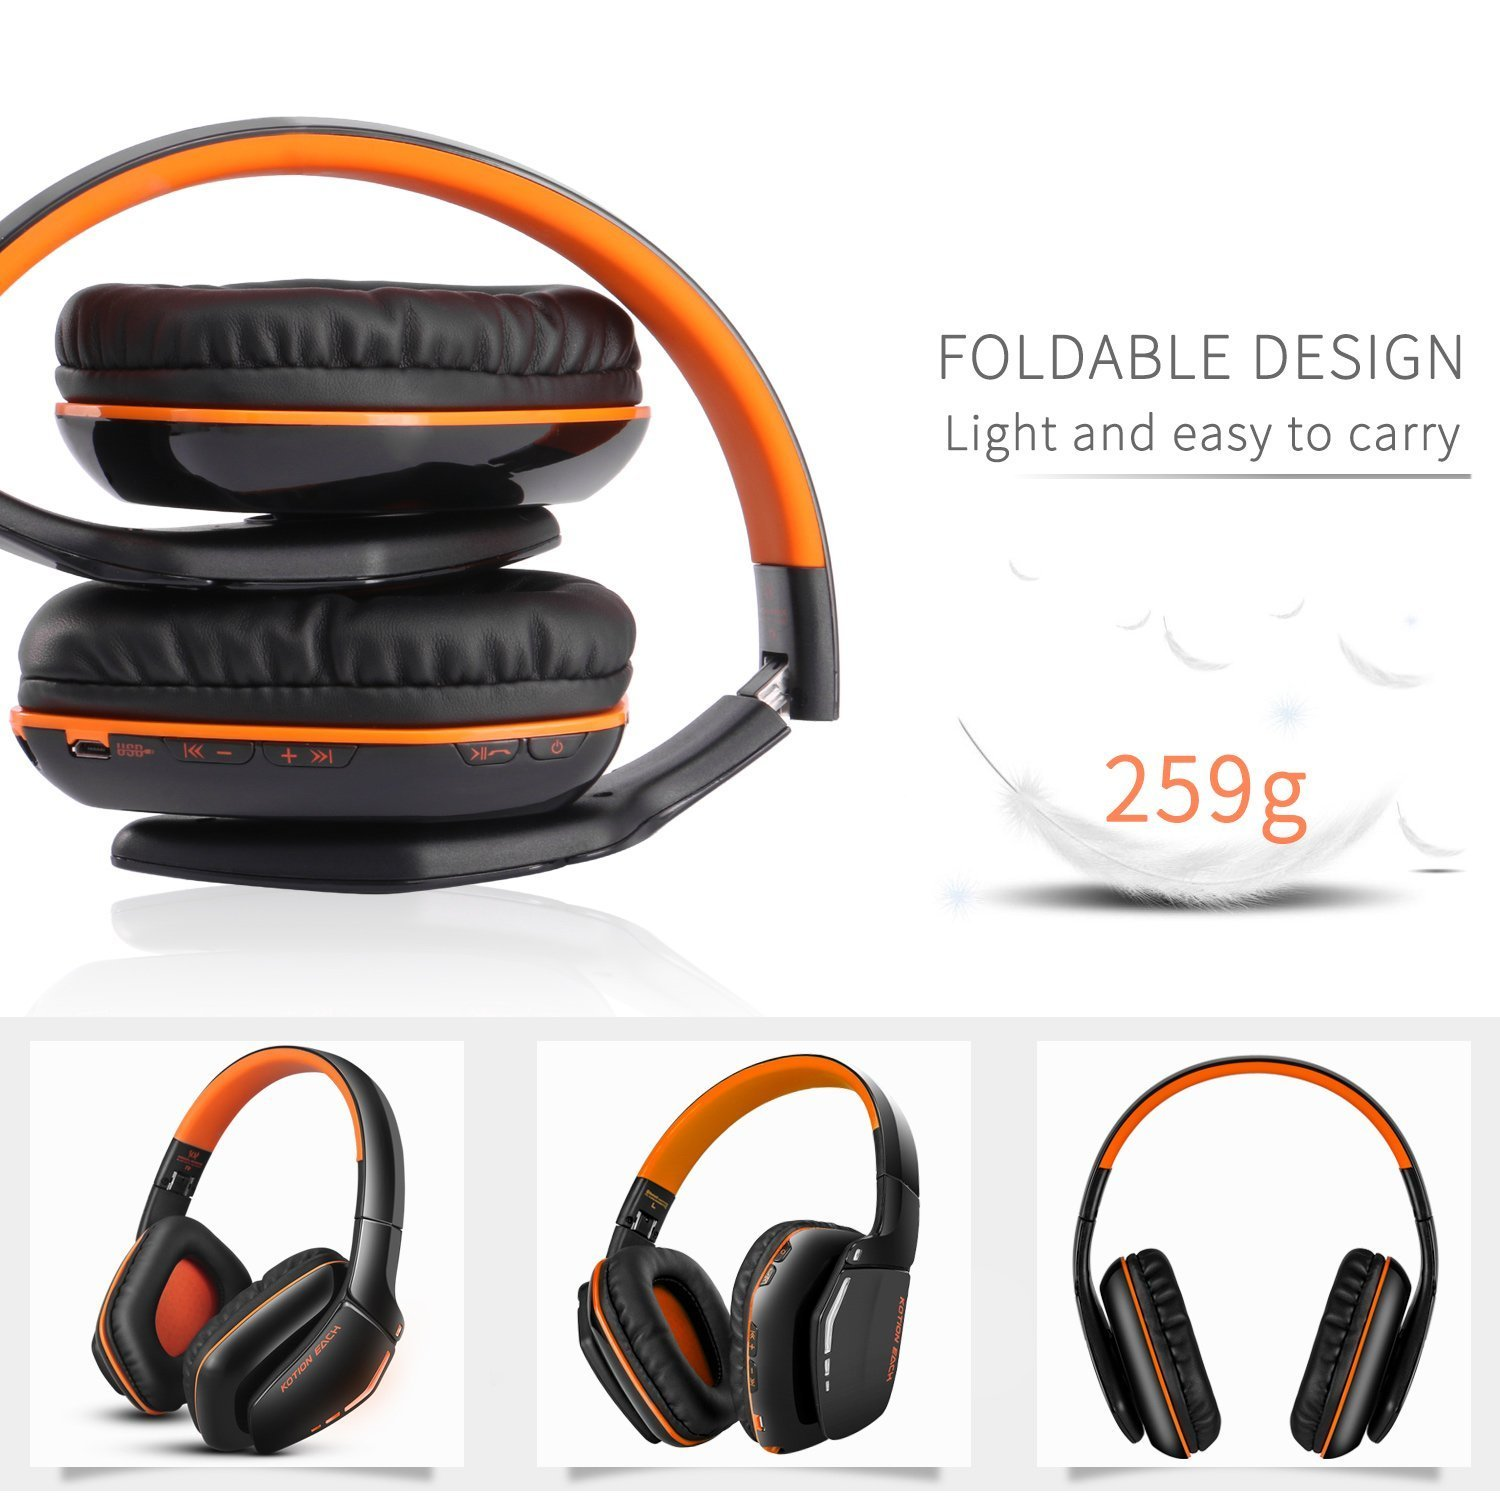 ZaKitane KOTION EACH B3506 Bluetooth Headphones for PS4 XBOX ONE S, Wireless Headset Foldable Gaming Headset V4.1 with Mic for Playstation 4 PC Mac Smartphones Computers (Orange)